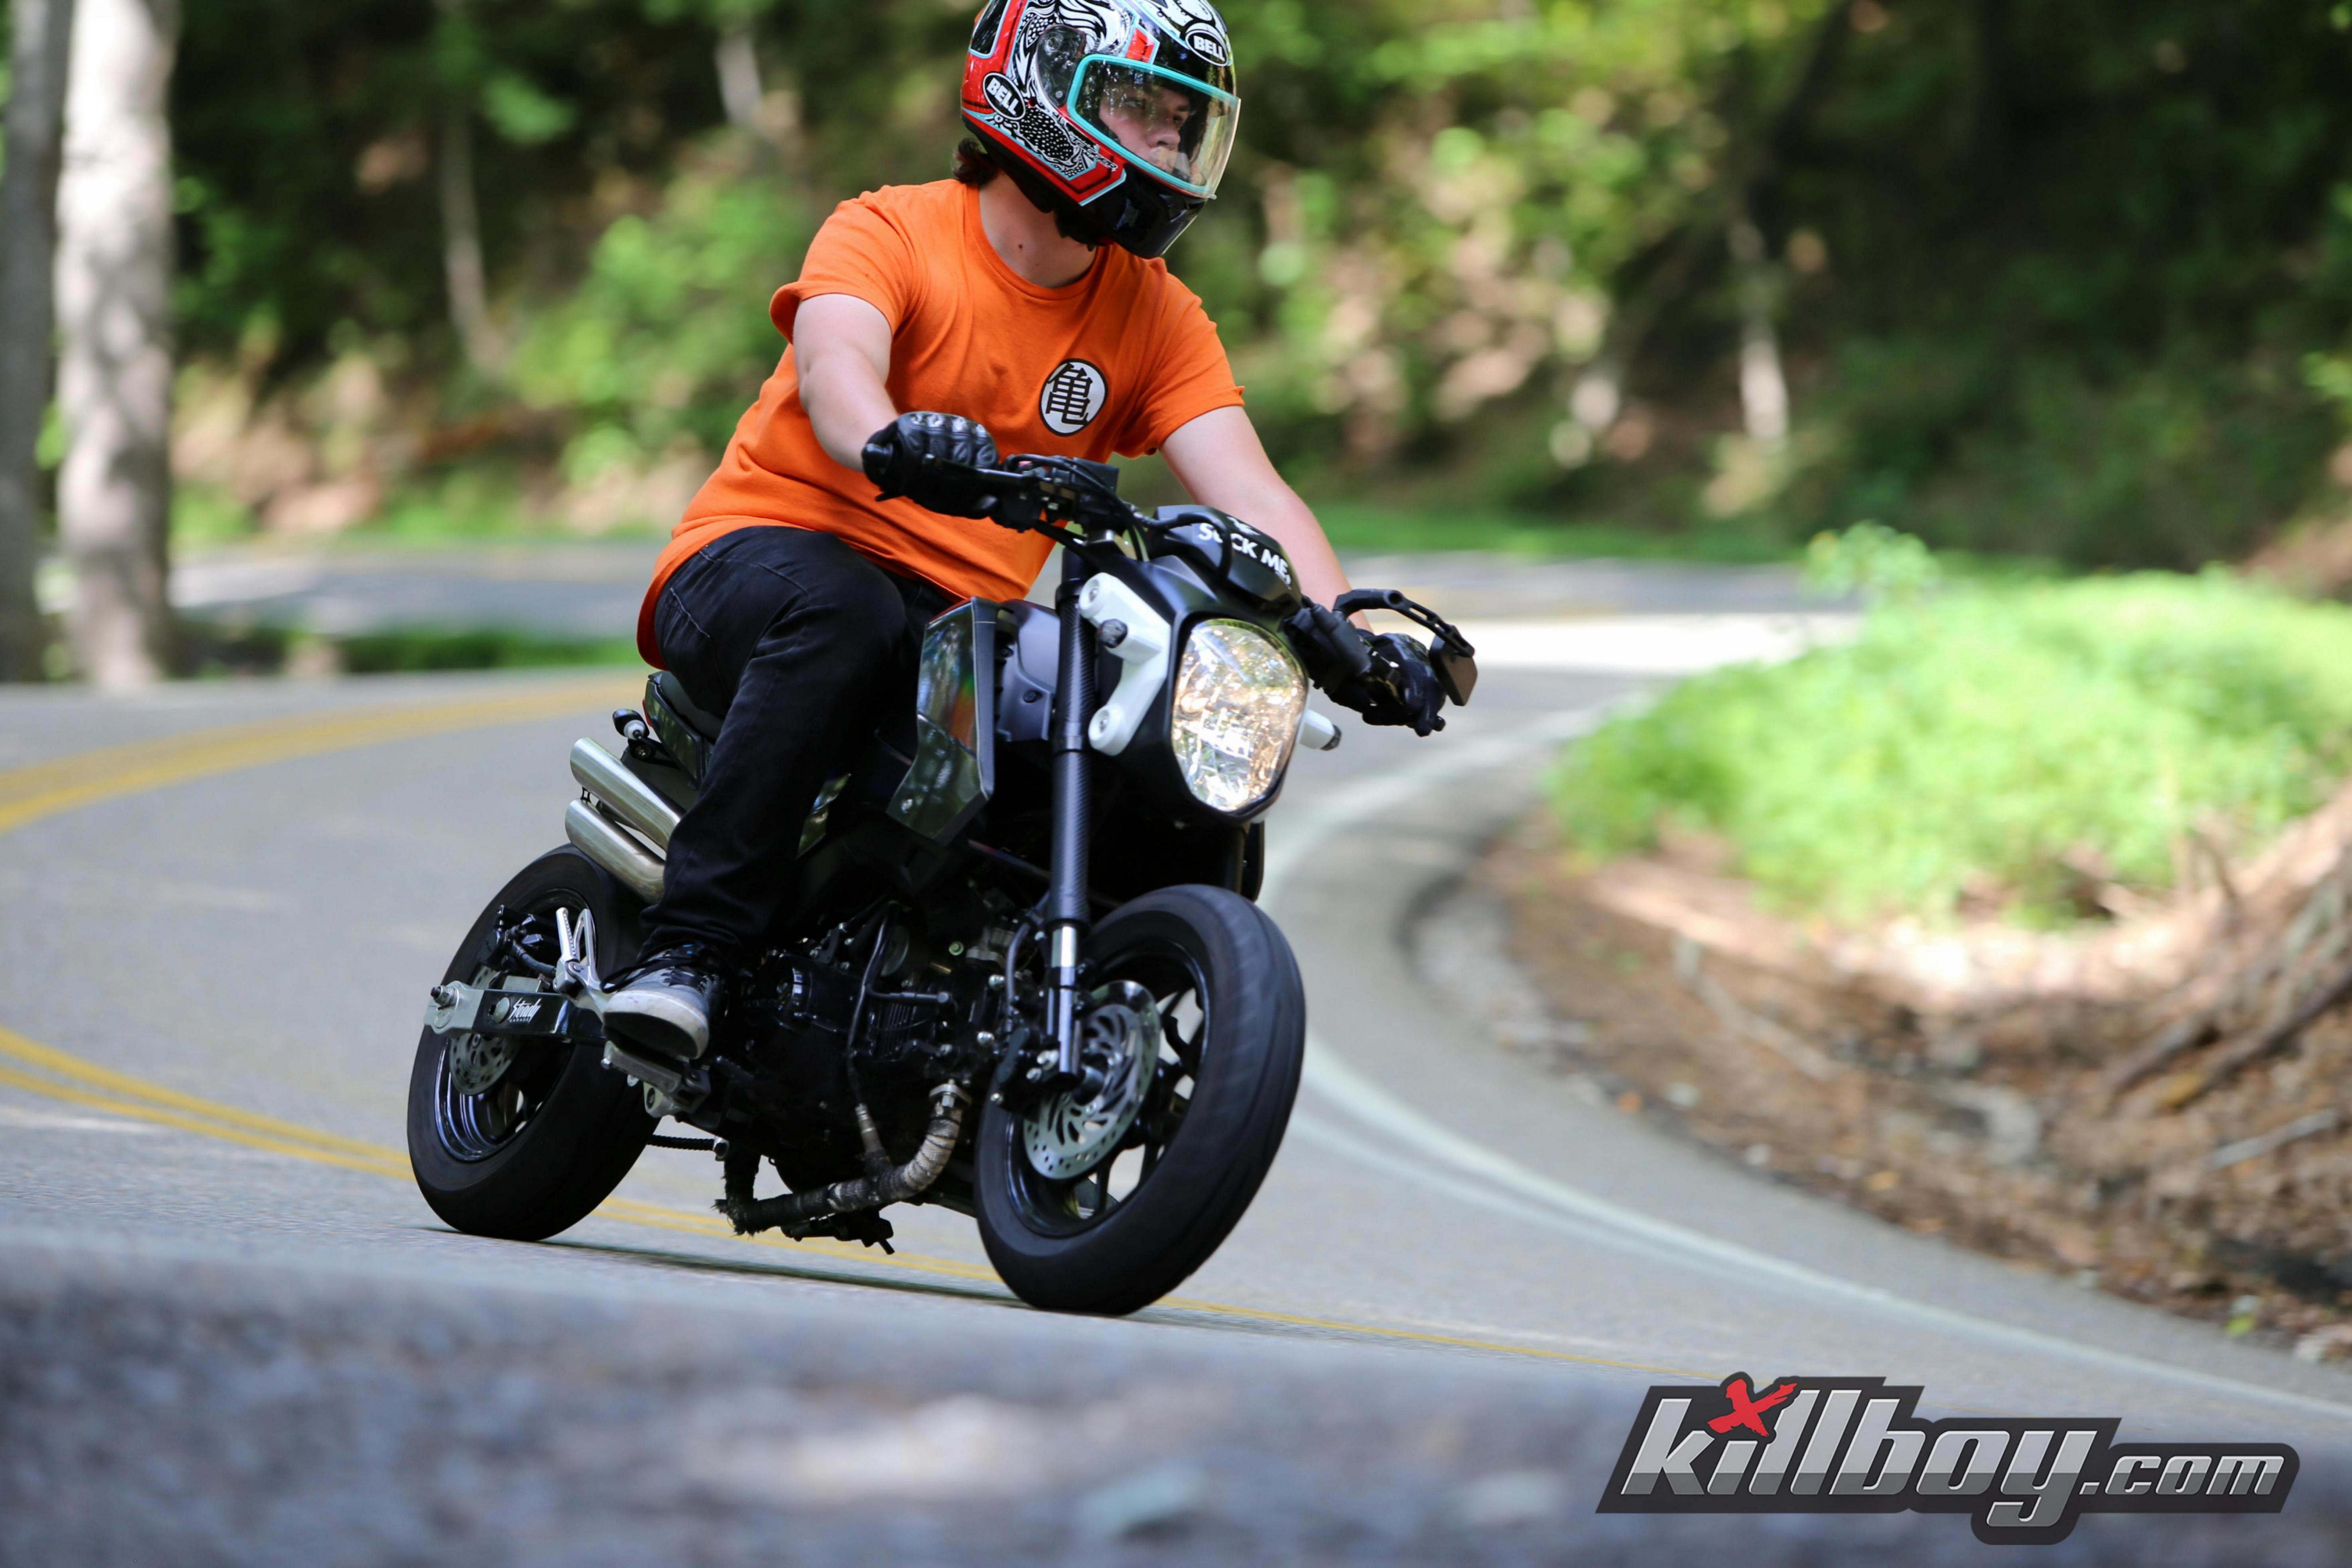 2015 Grom Owner-7635ad1f-d744-4154-8891-4e07b30a5be1_1567709334552.jpg